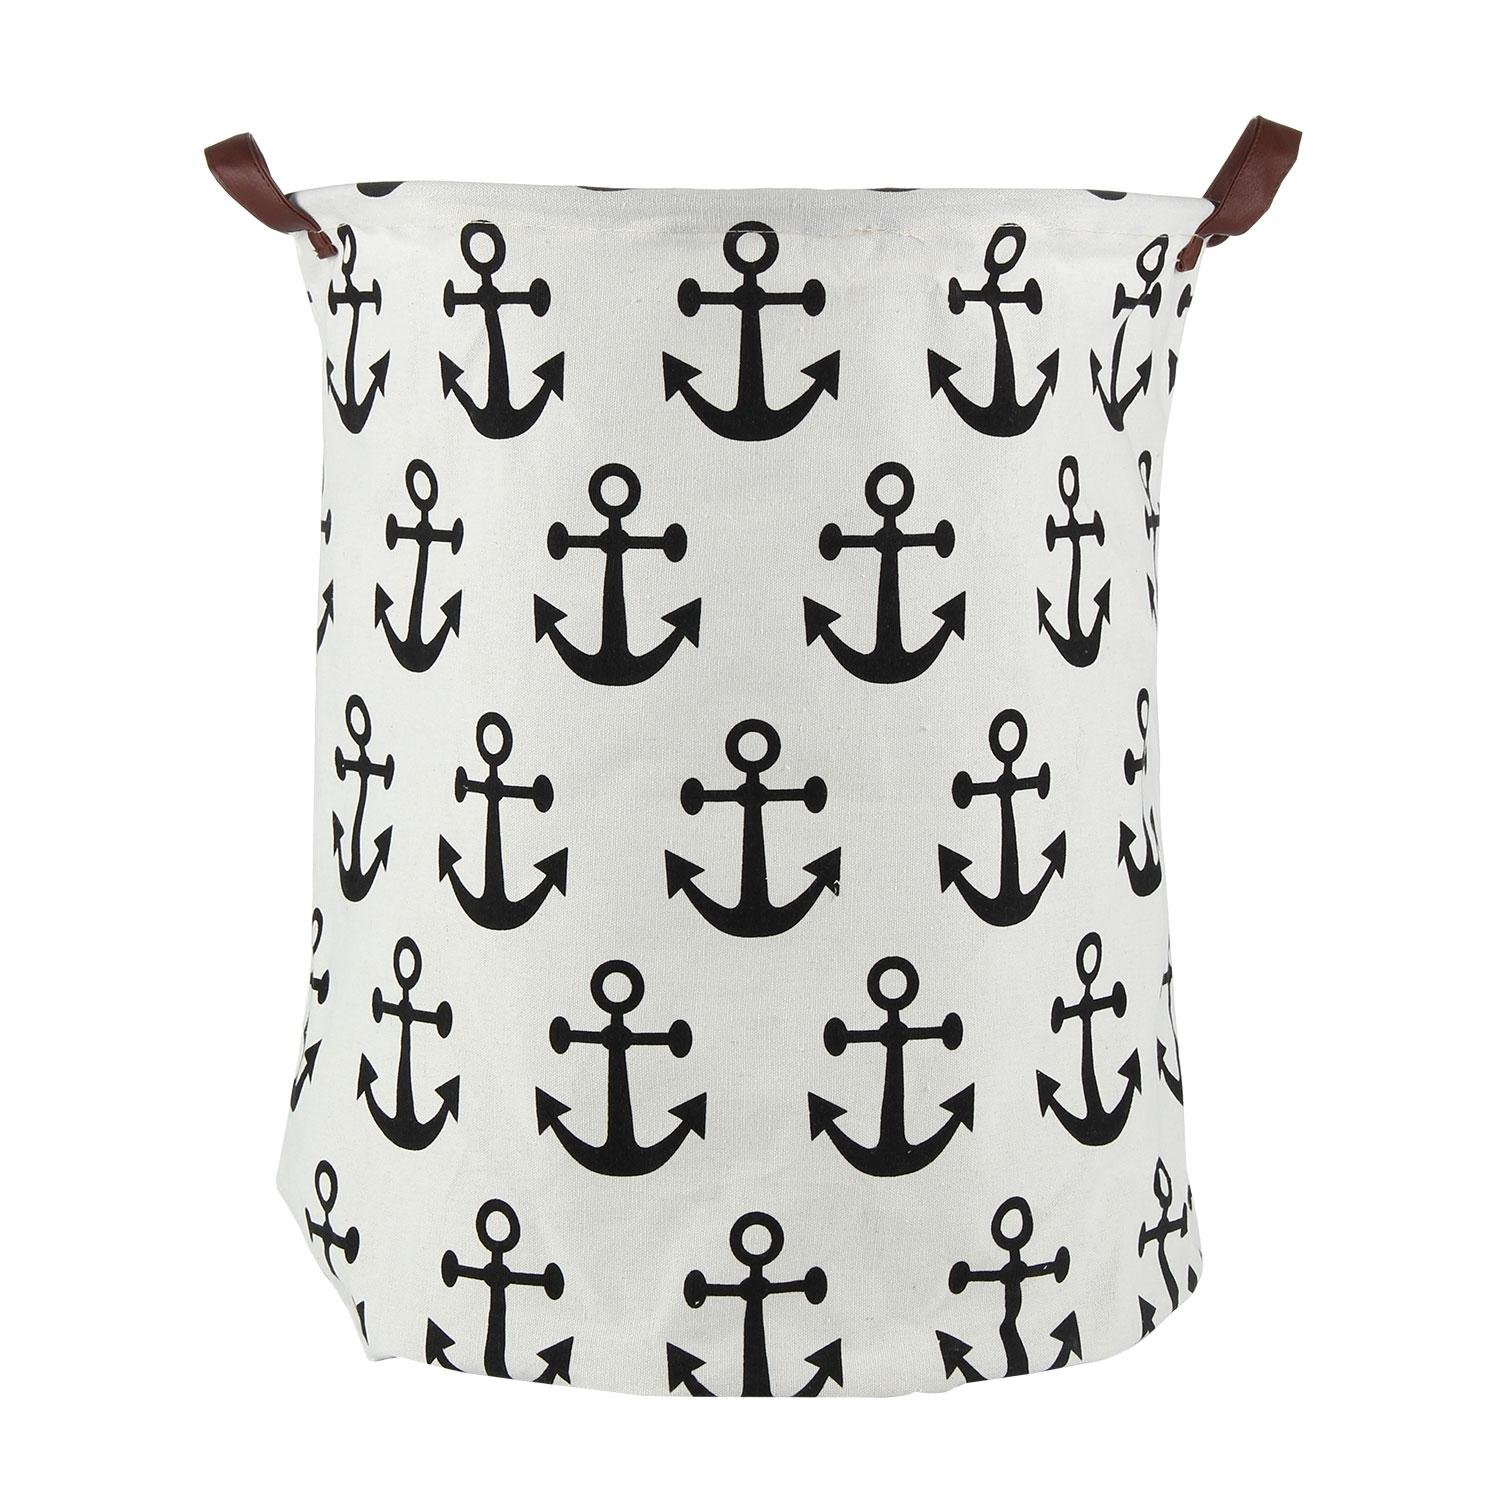 Pawaca Foldable Storage Basket with Anchor Design, 15.74'' x 19.68'' Home Organizer, Large Capacity for Toys Clothes Nursery, Sailor Style